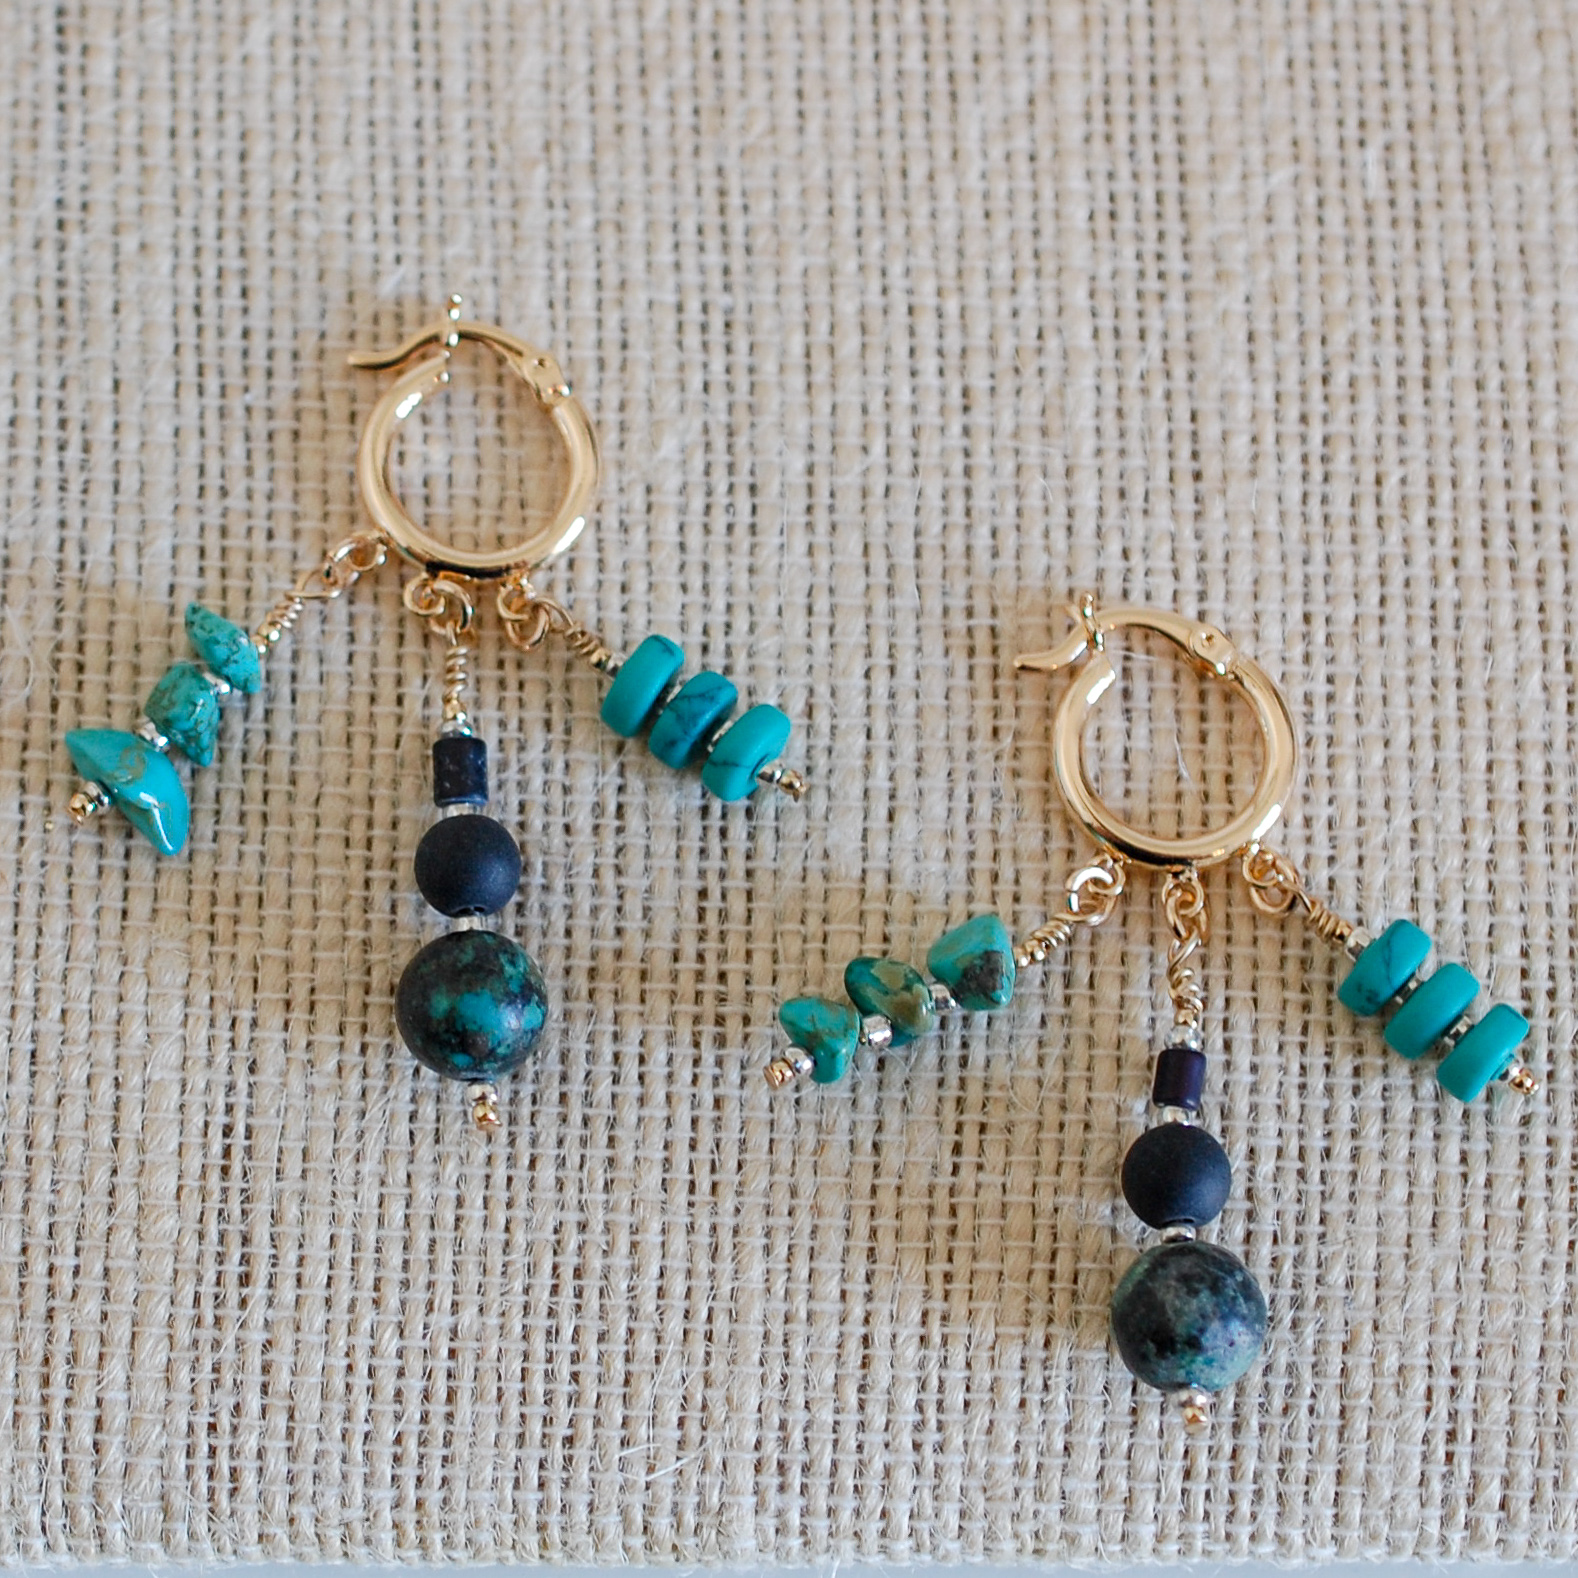 Turquoise Dancing Huggie Earrings